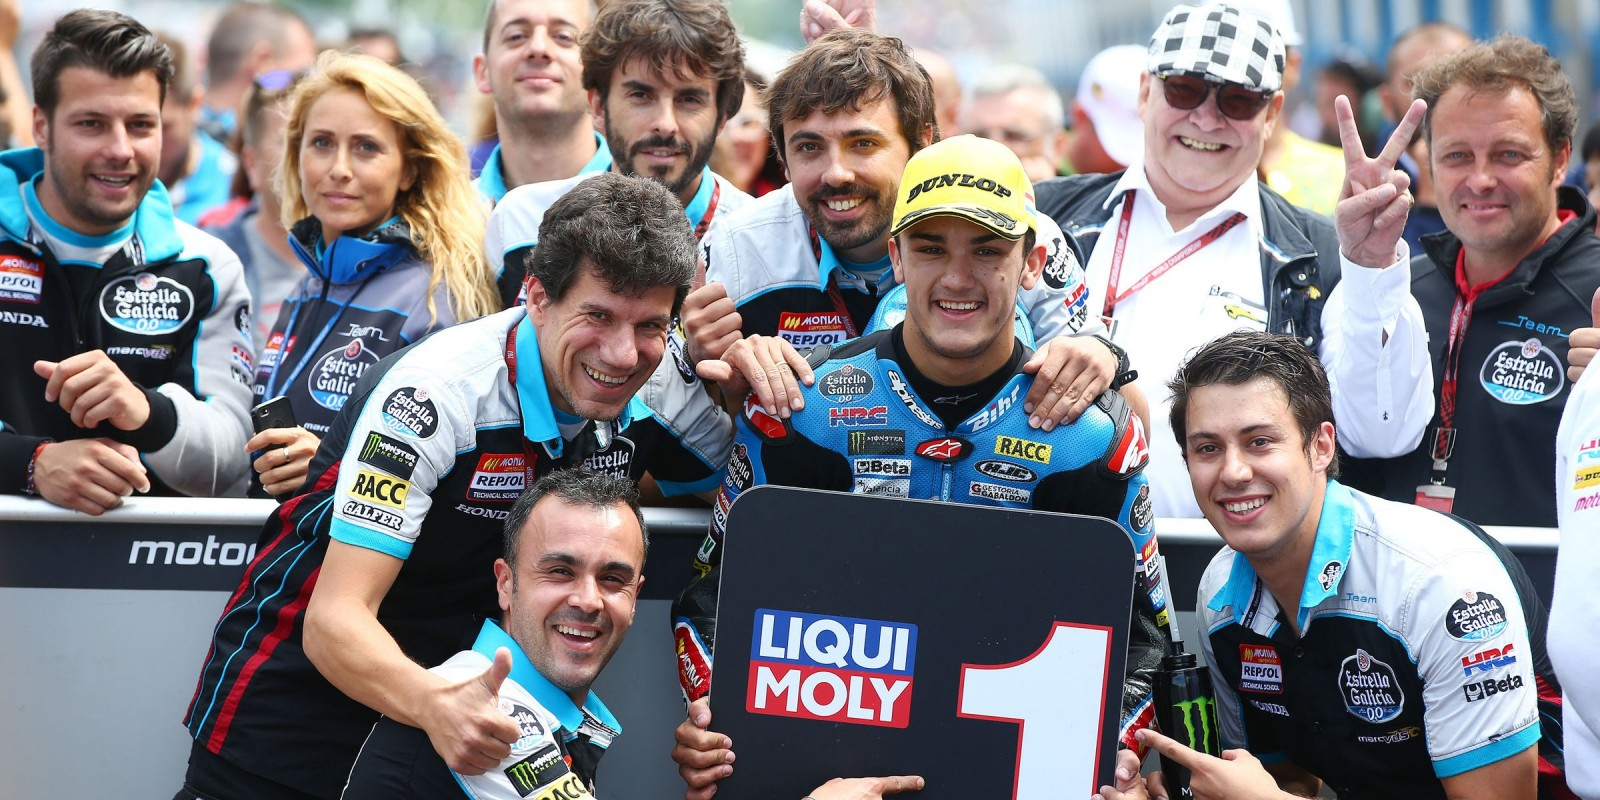 Monster athletes compete in the 2017 MotoGP stop in Assen